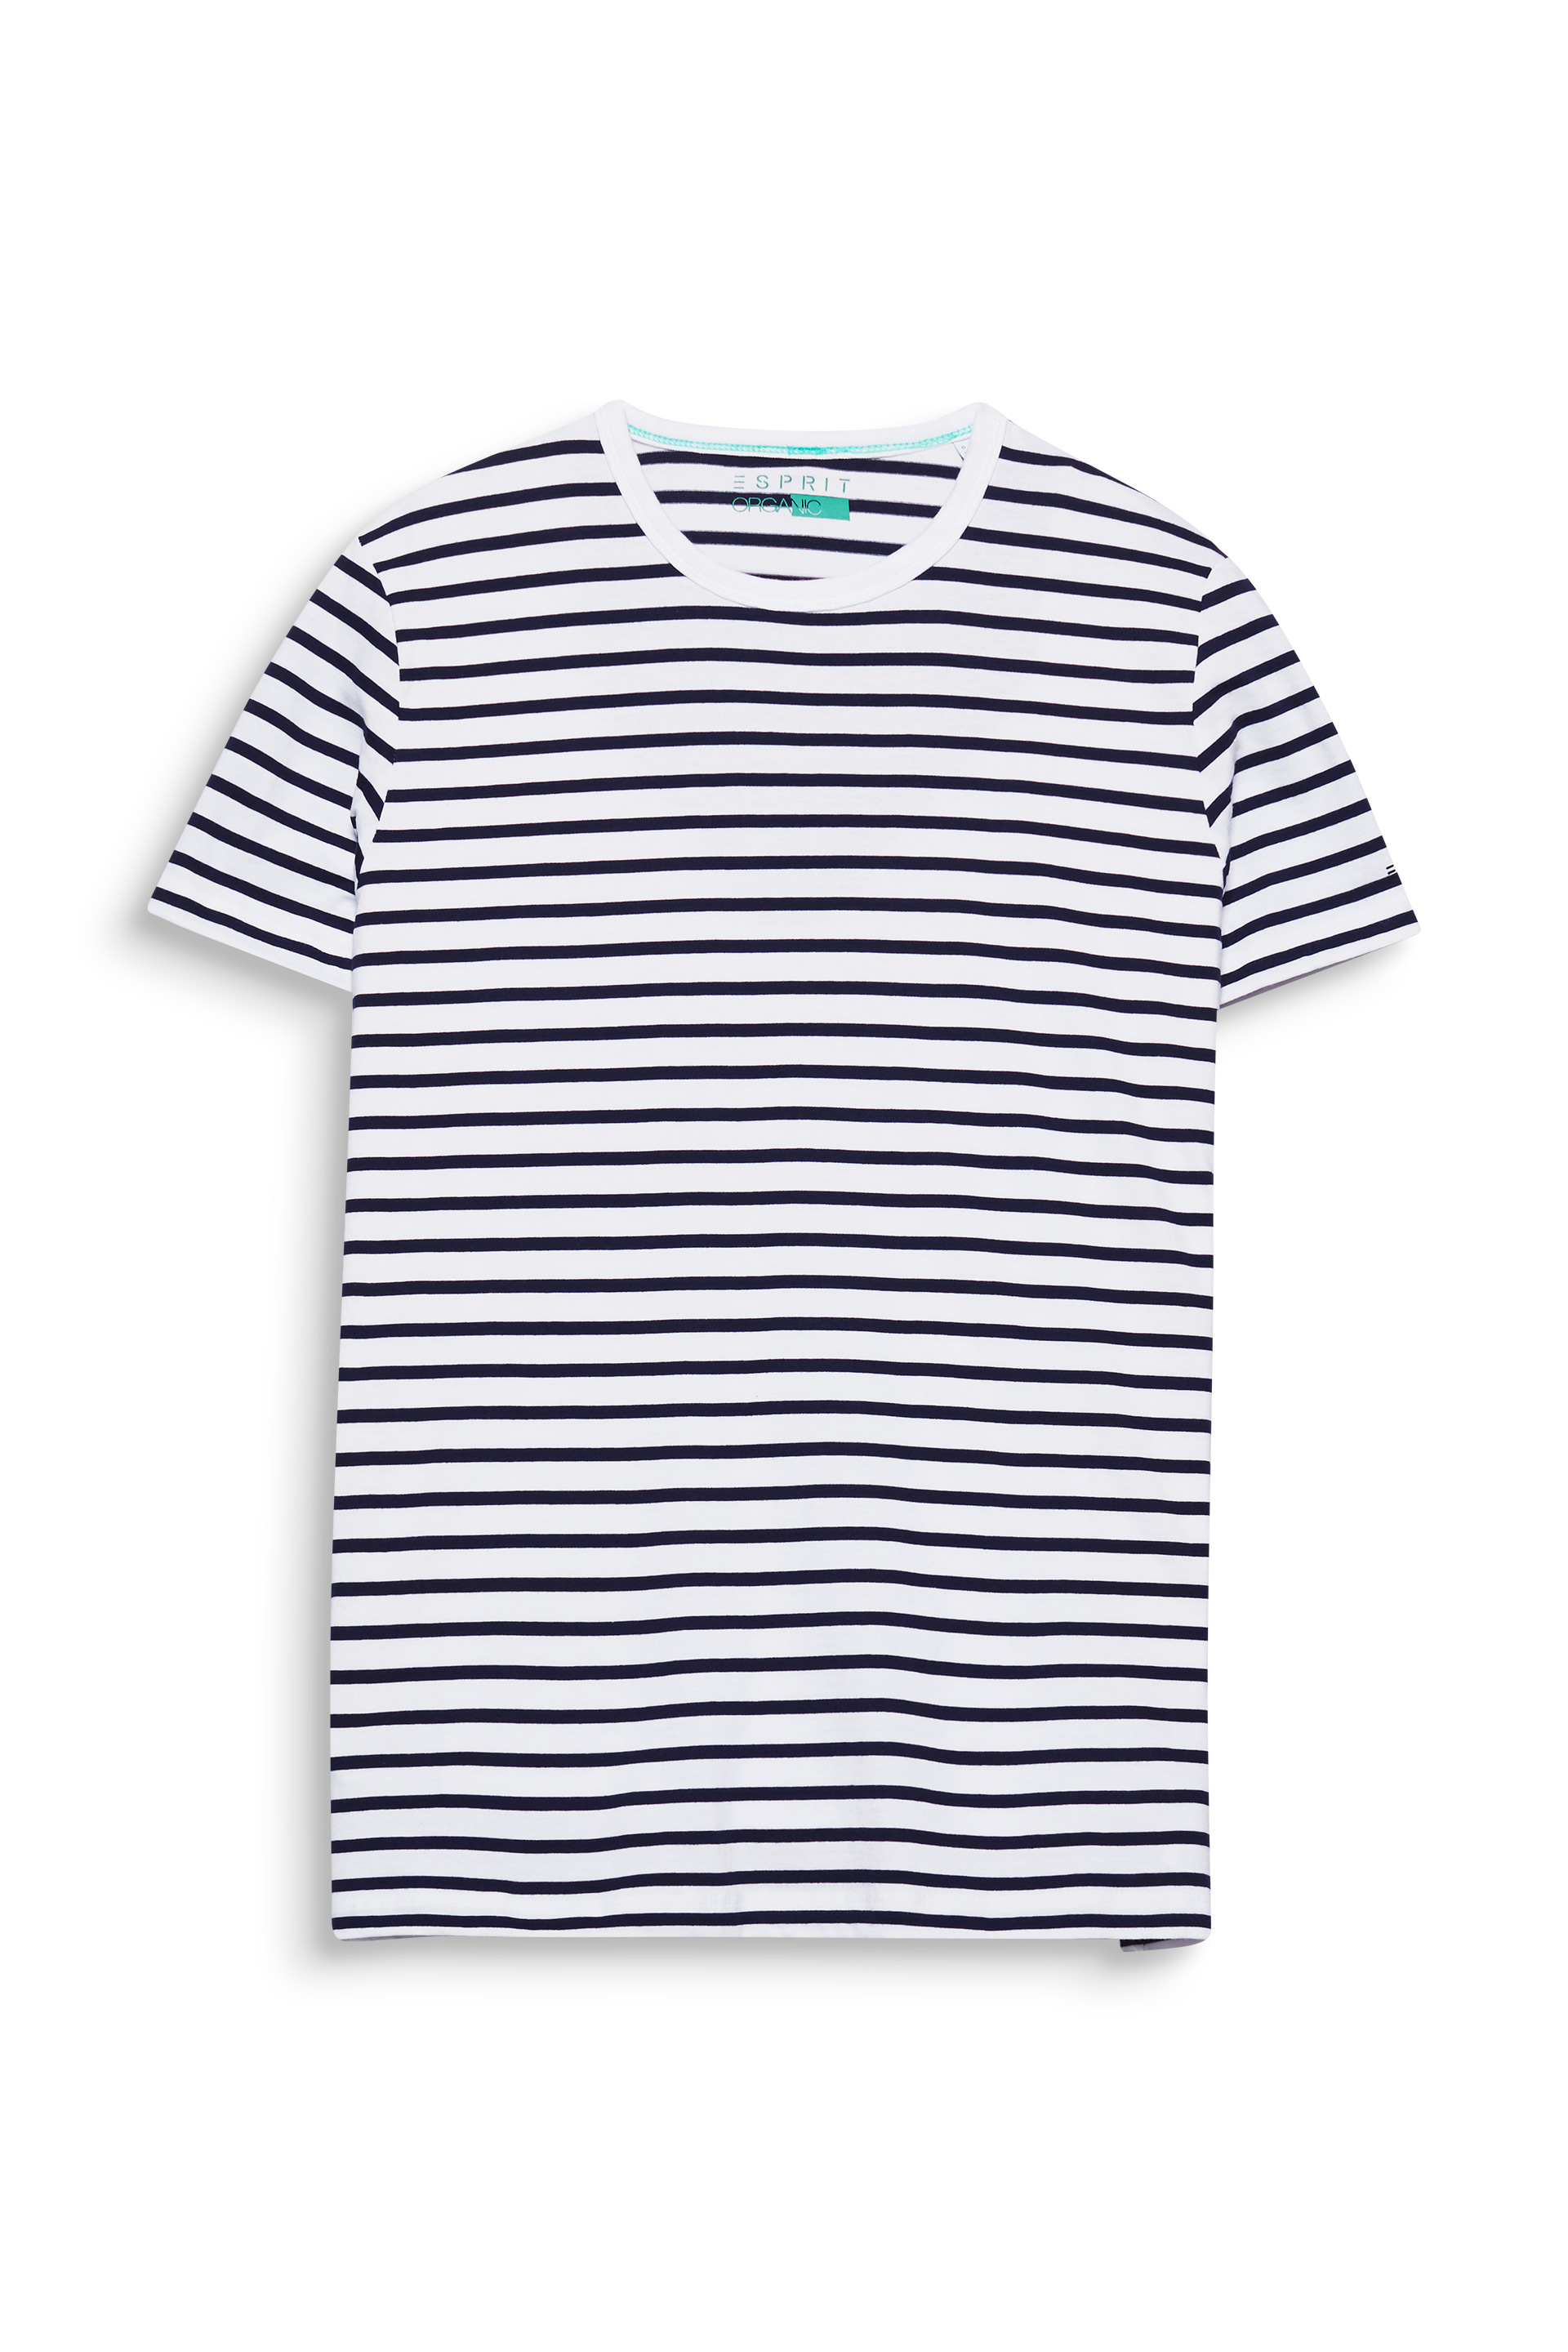 Esprit White100 Striped T-shirt In Organic Cotton